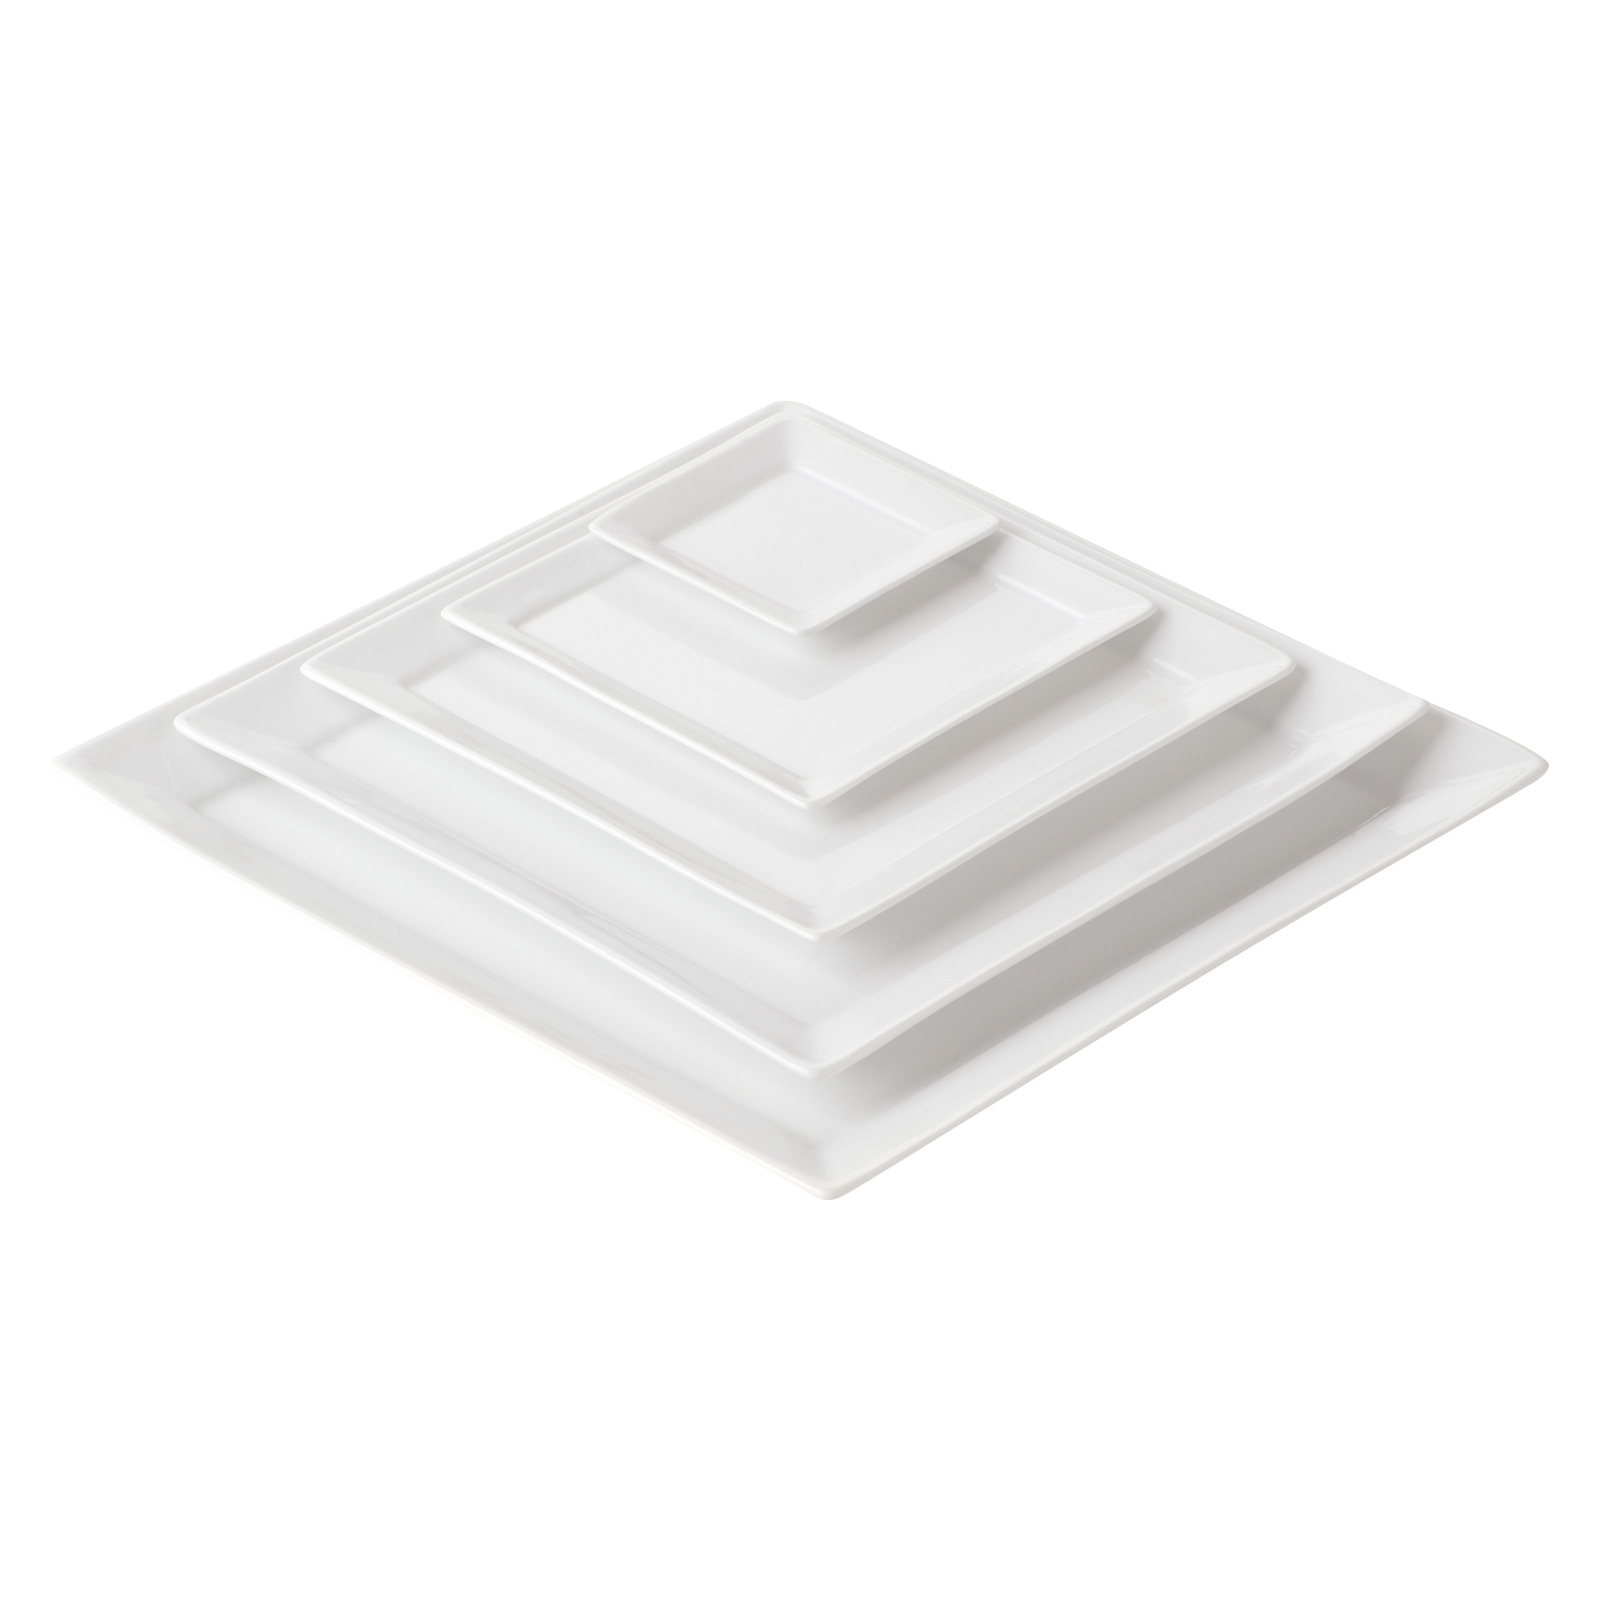 Set of 6 Zensation Square Trays Medium by BIA